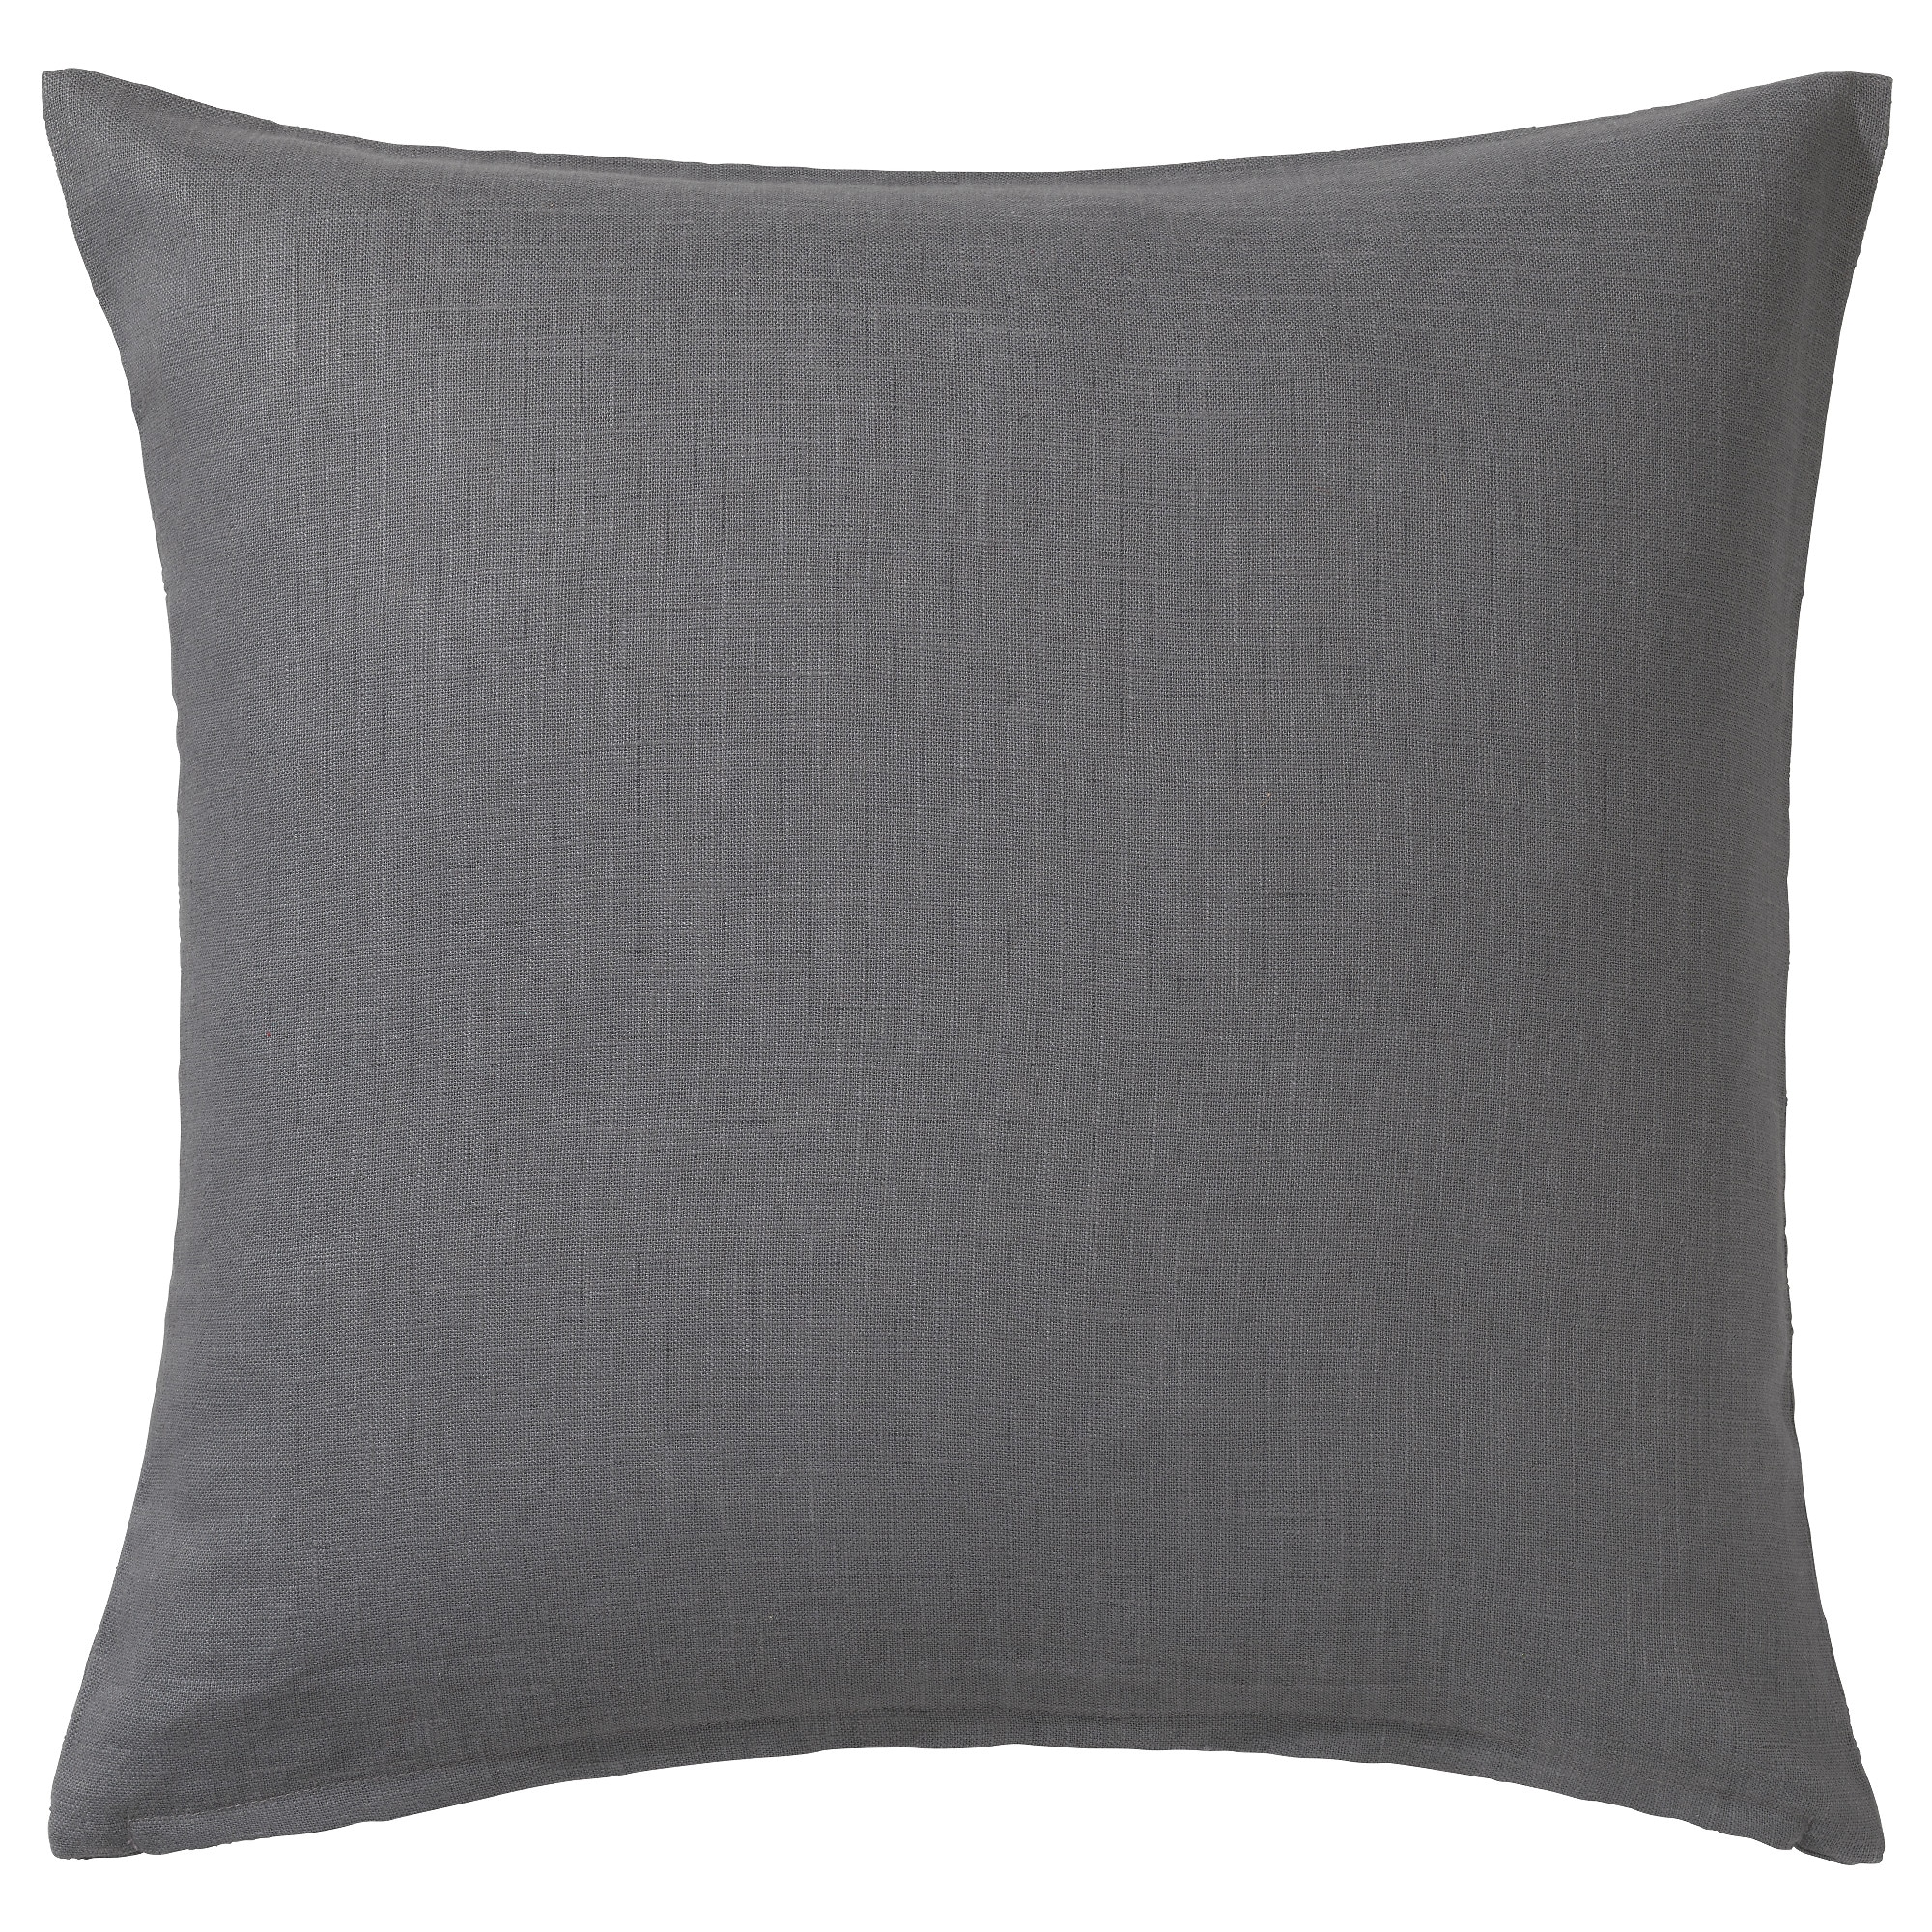 cushions  cushion covers  ikea - vigdis cushion cover dark gray length   width   length